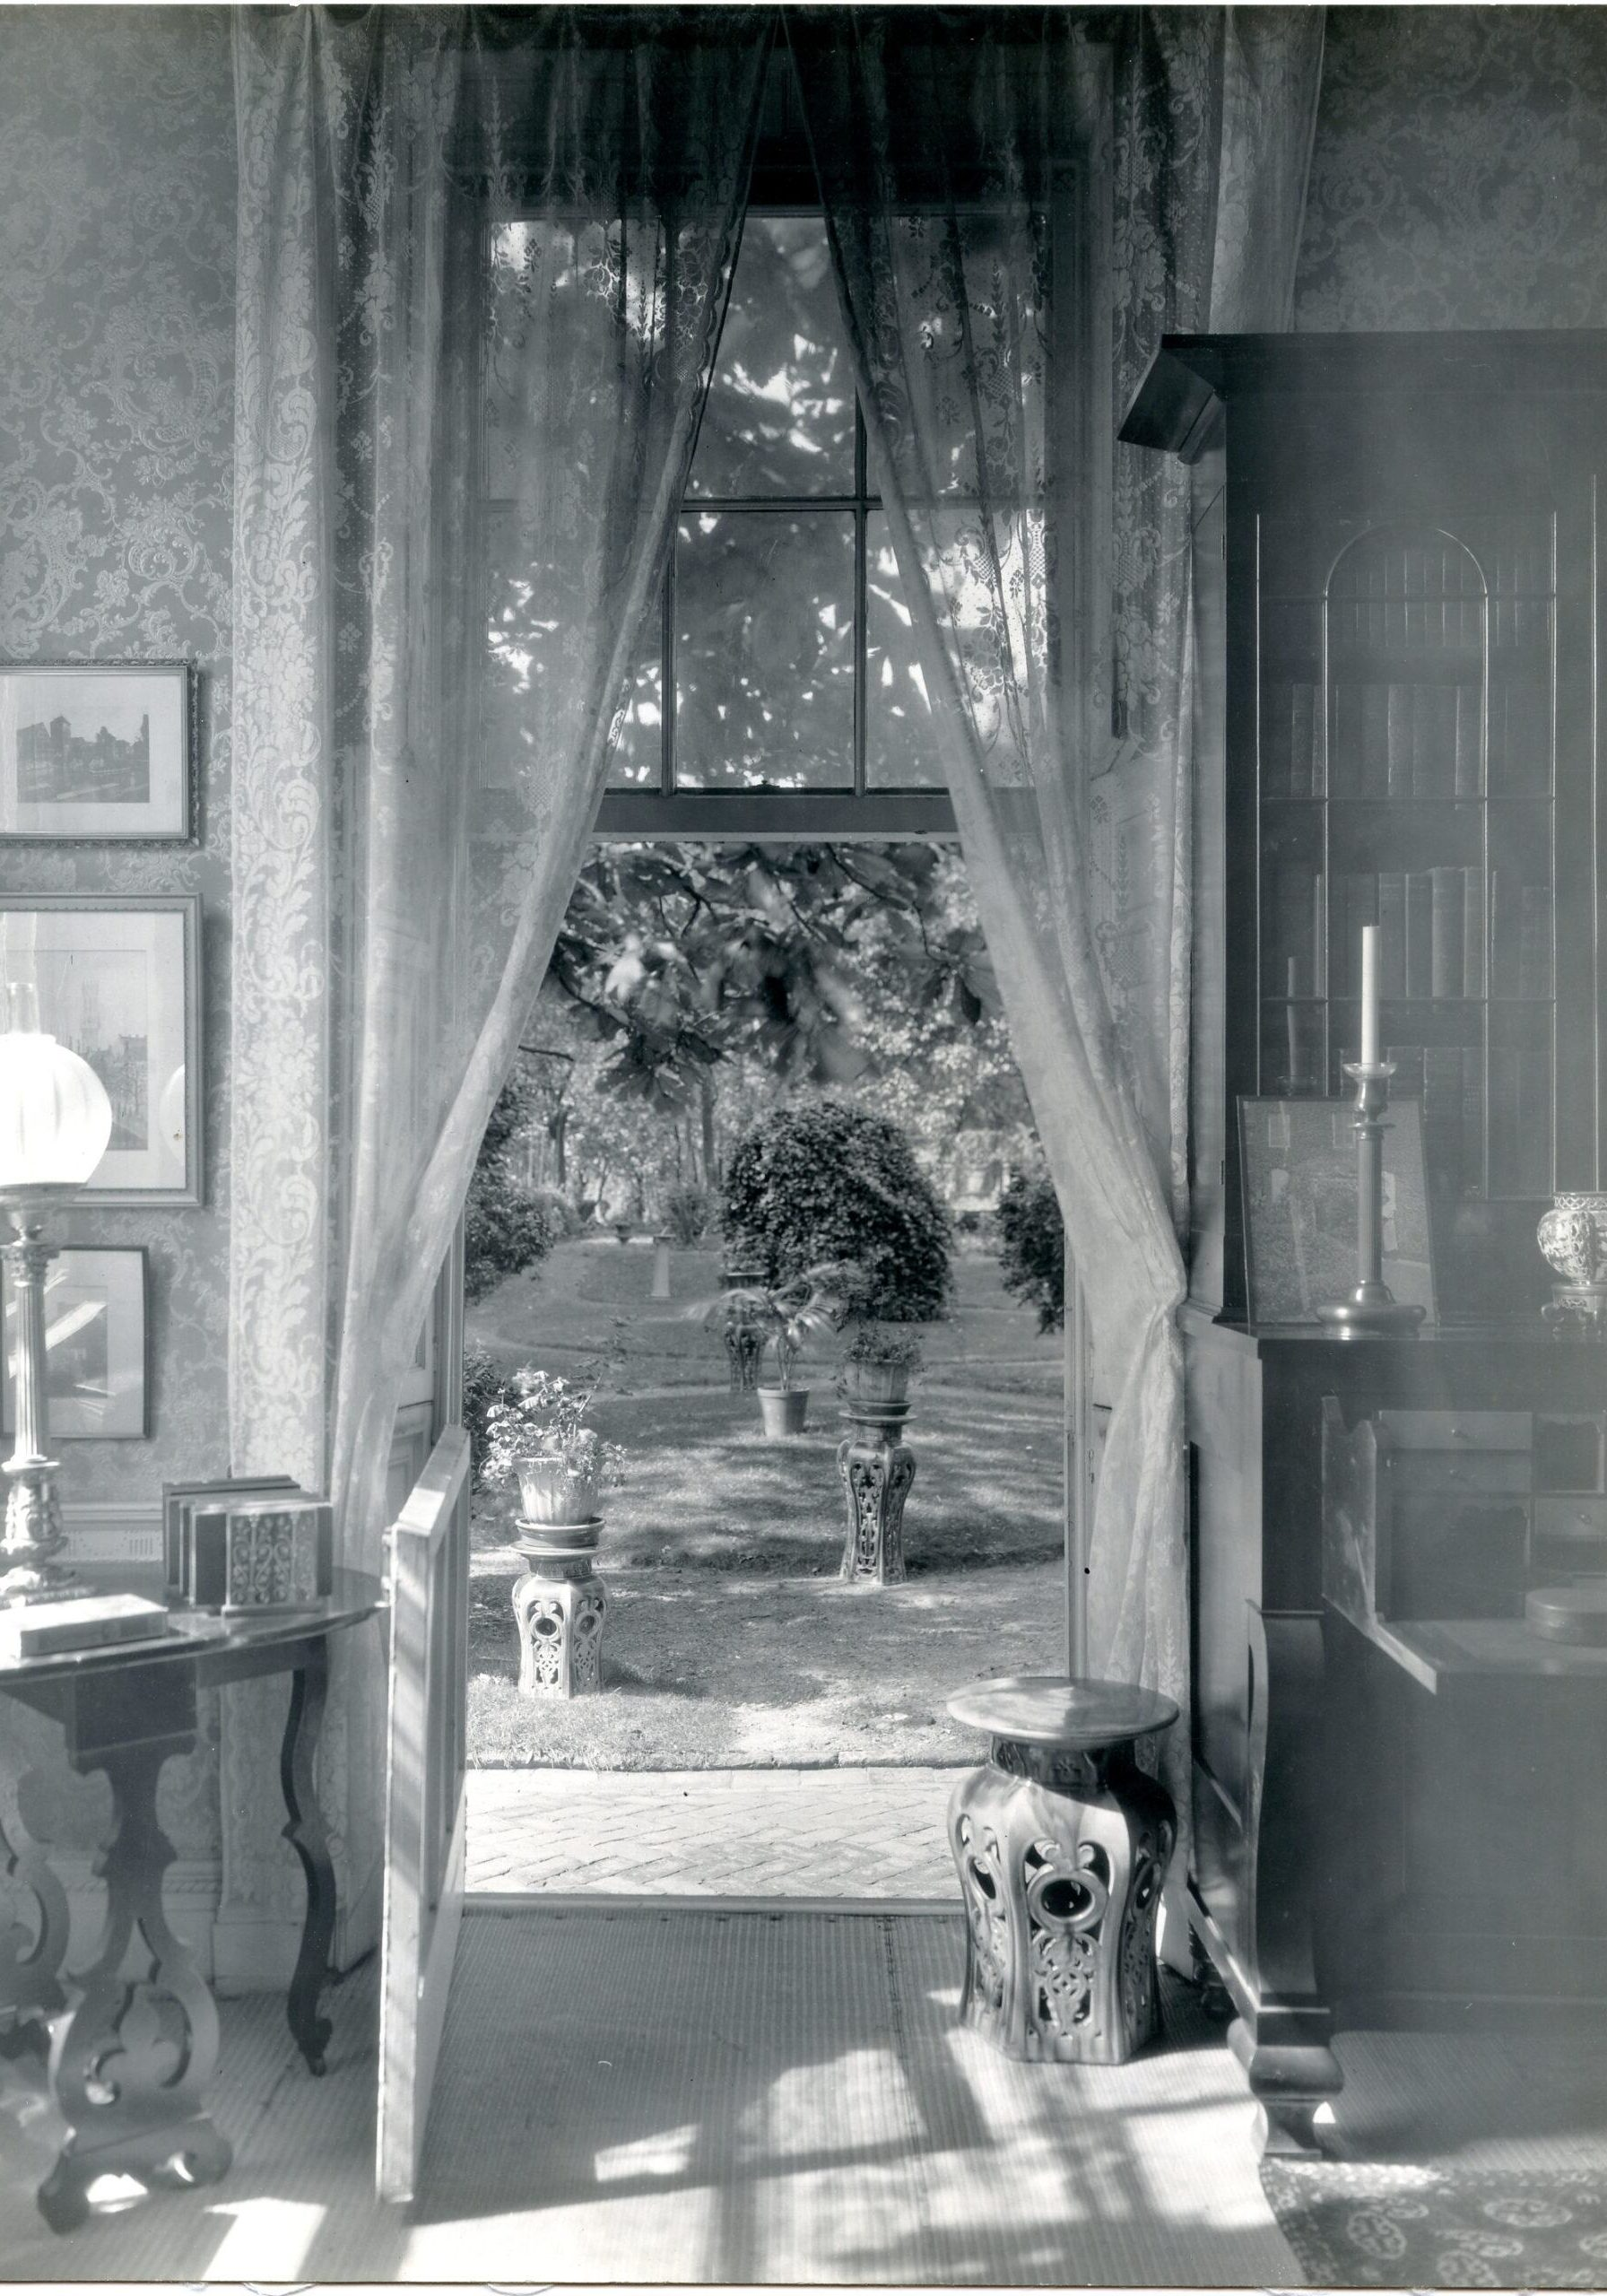 black-and-white historic photograph of an open window